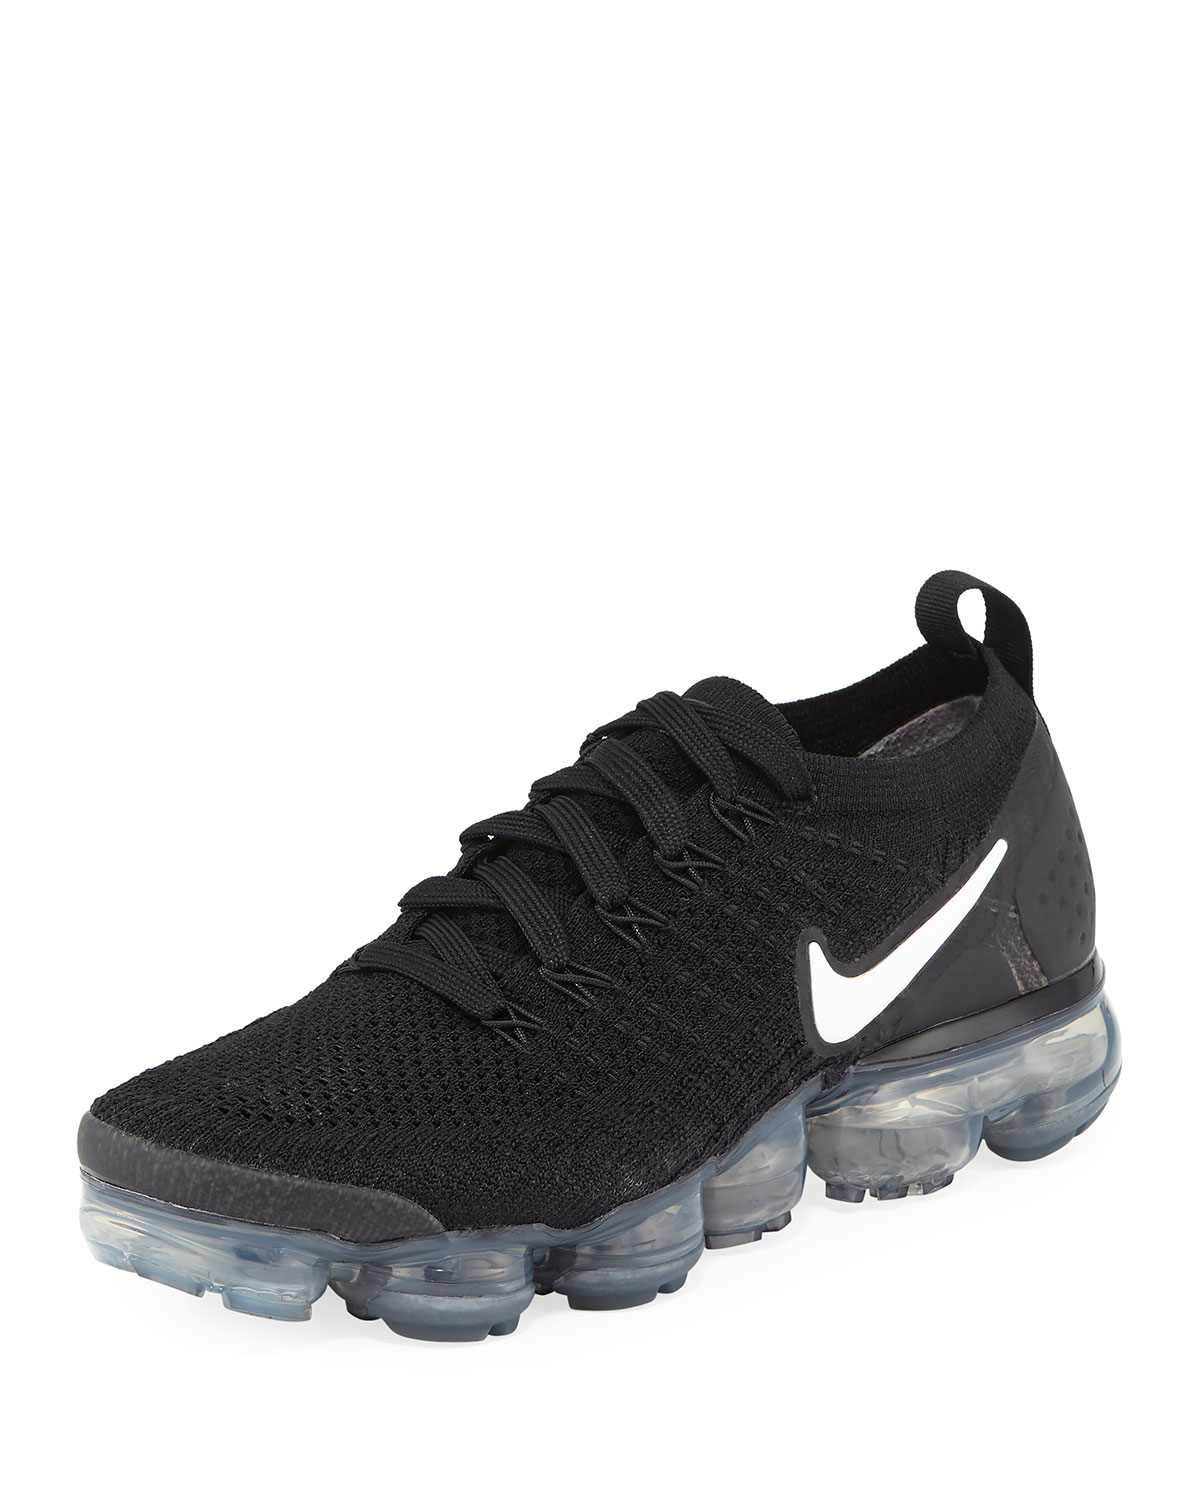 check out 1782f 2e398 Air VaporMax Flyknit 2 Running Sneakers